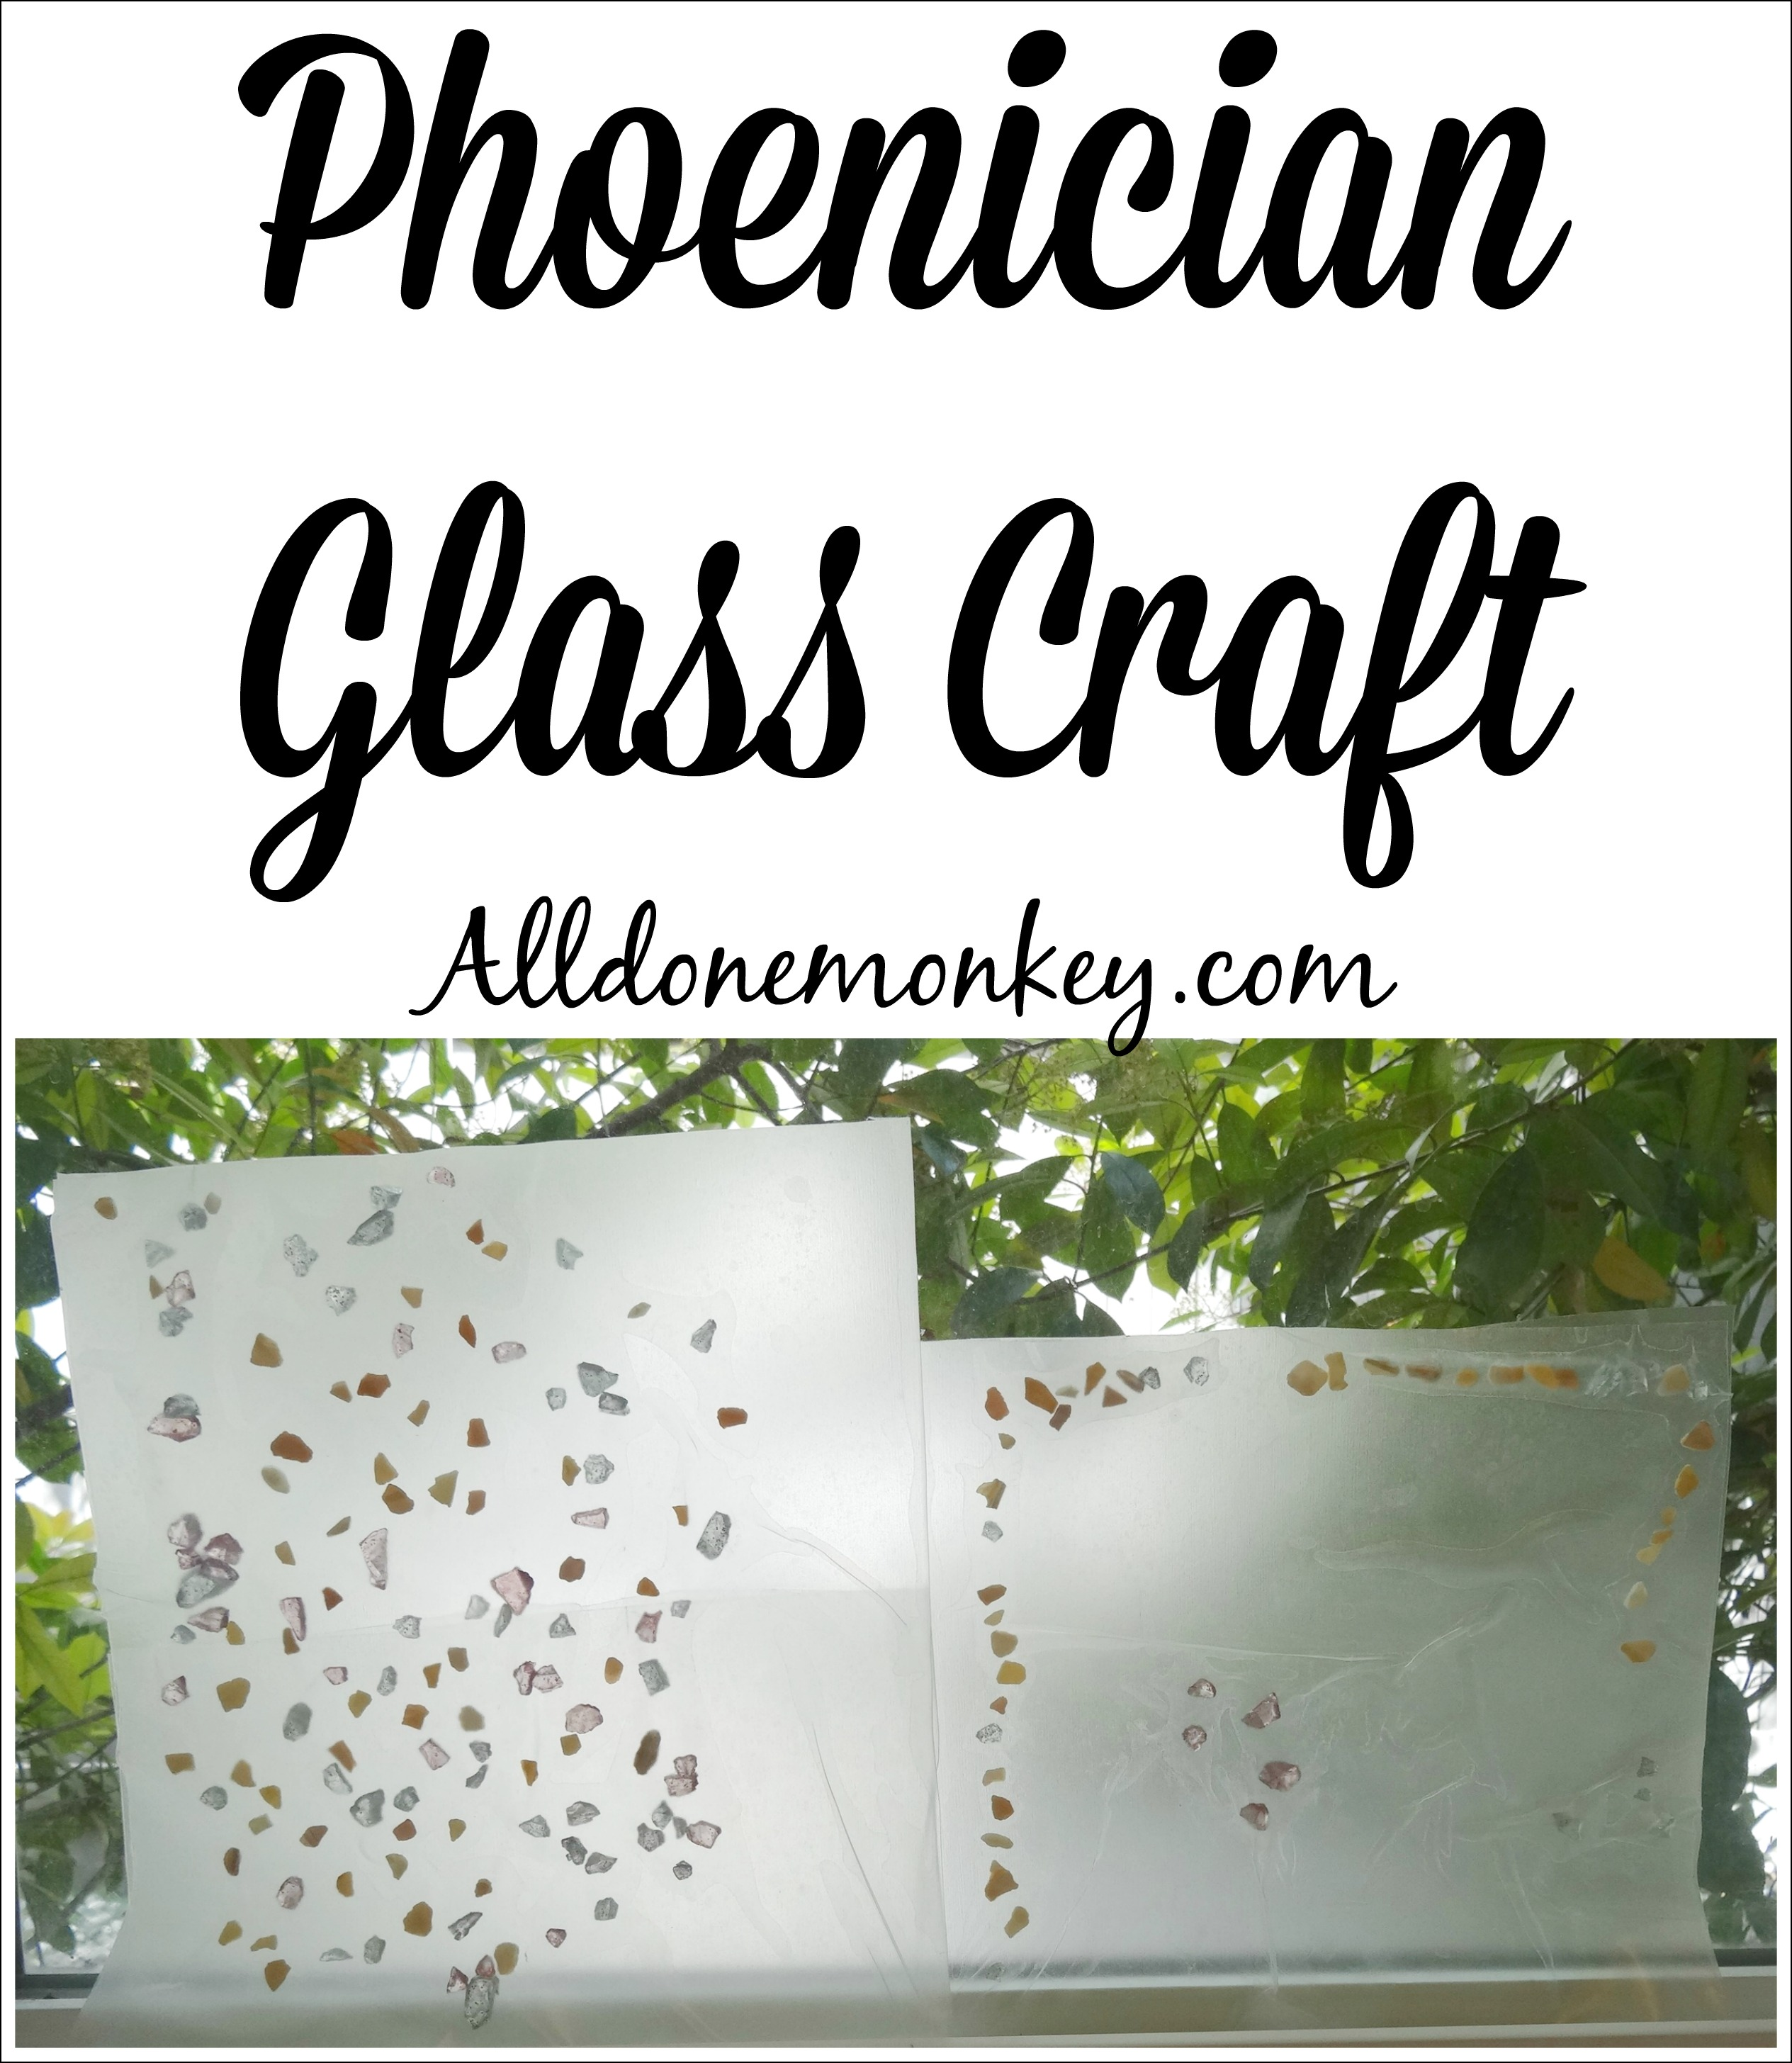 Fun and easy craft to learn about Phoenician glass making | Alldonemonkey.com